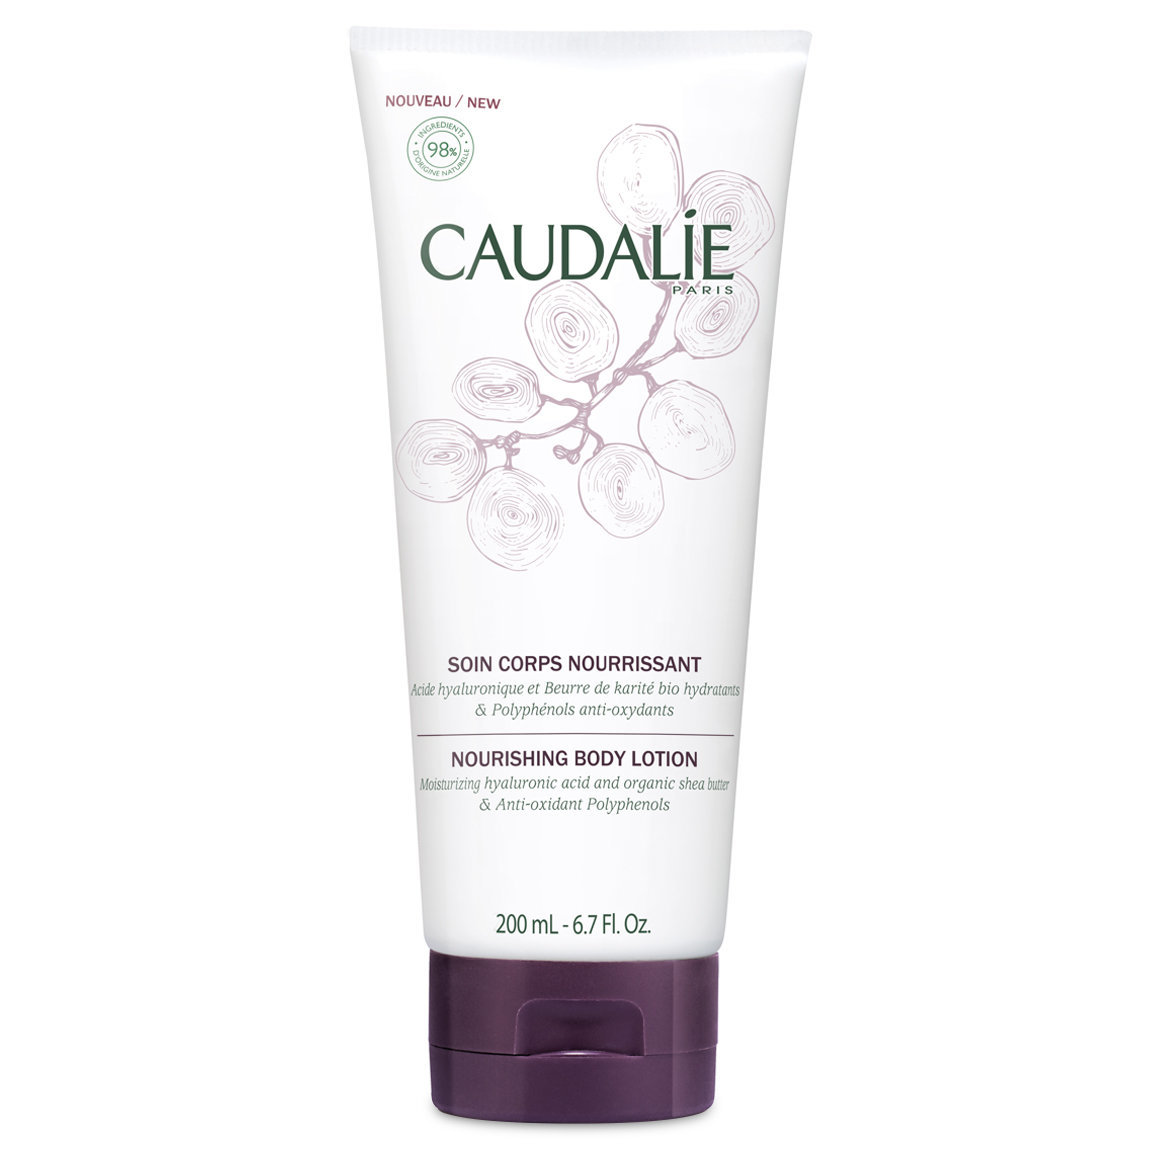 Caudalie Nourishing Hyaluronic Body Lotion product swatch.